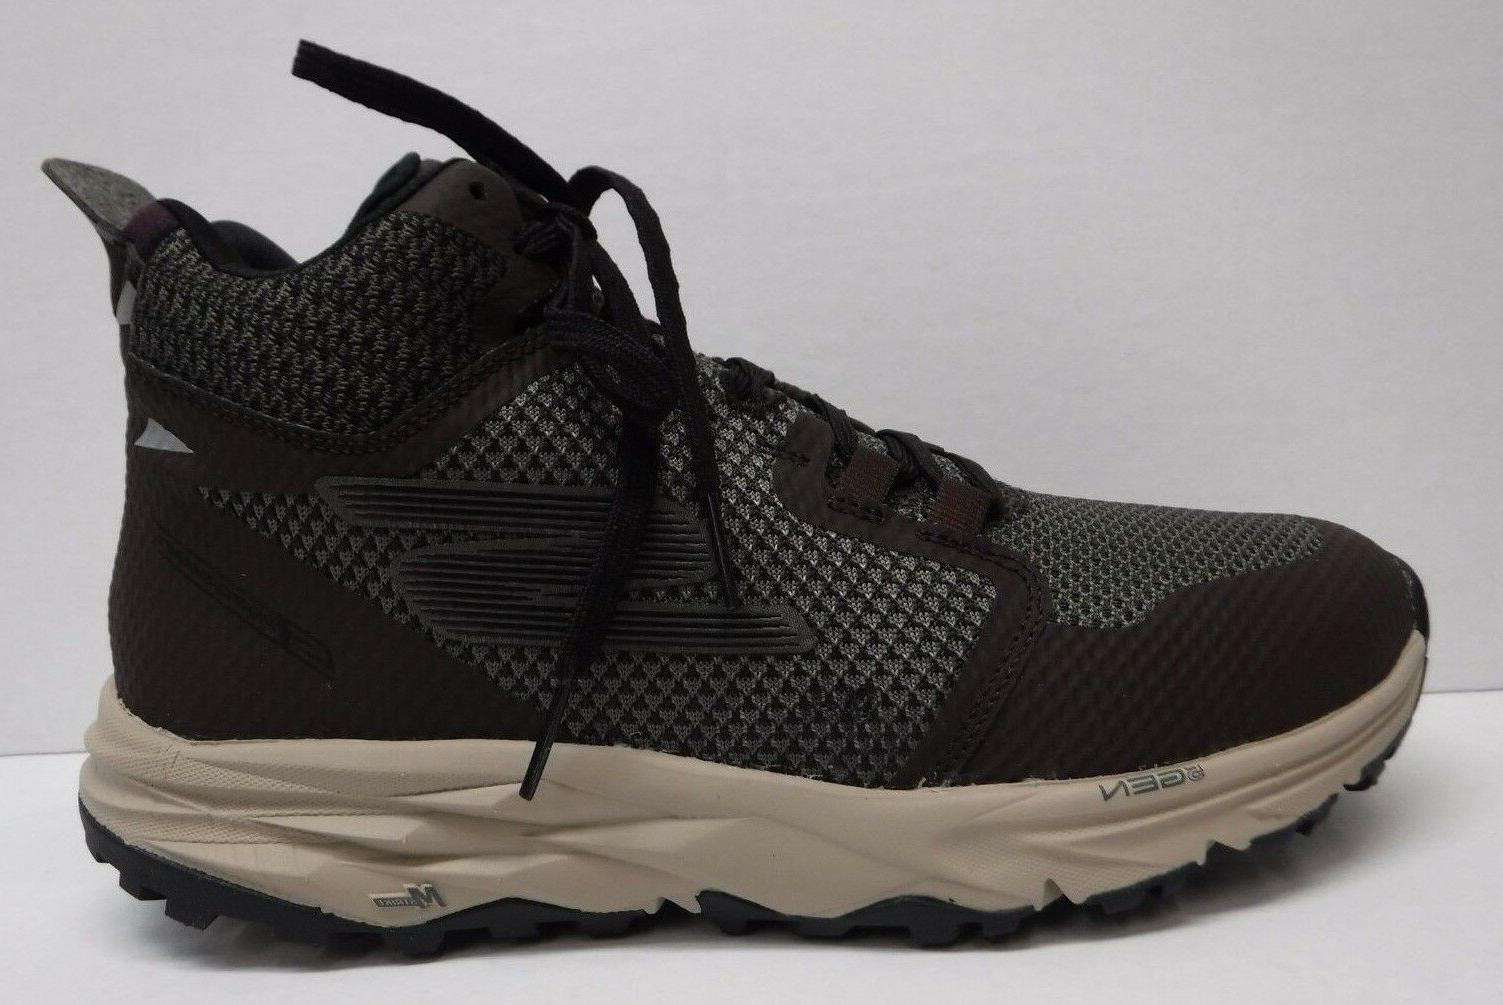 Skechers Size 7.5 Water Resistant Trail Sneakers New Womens